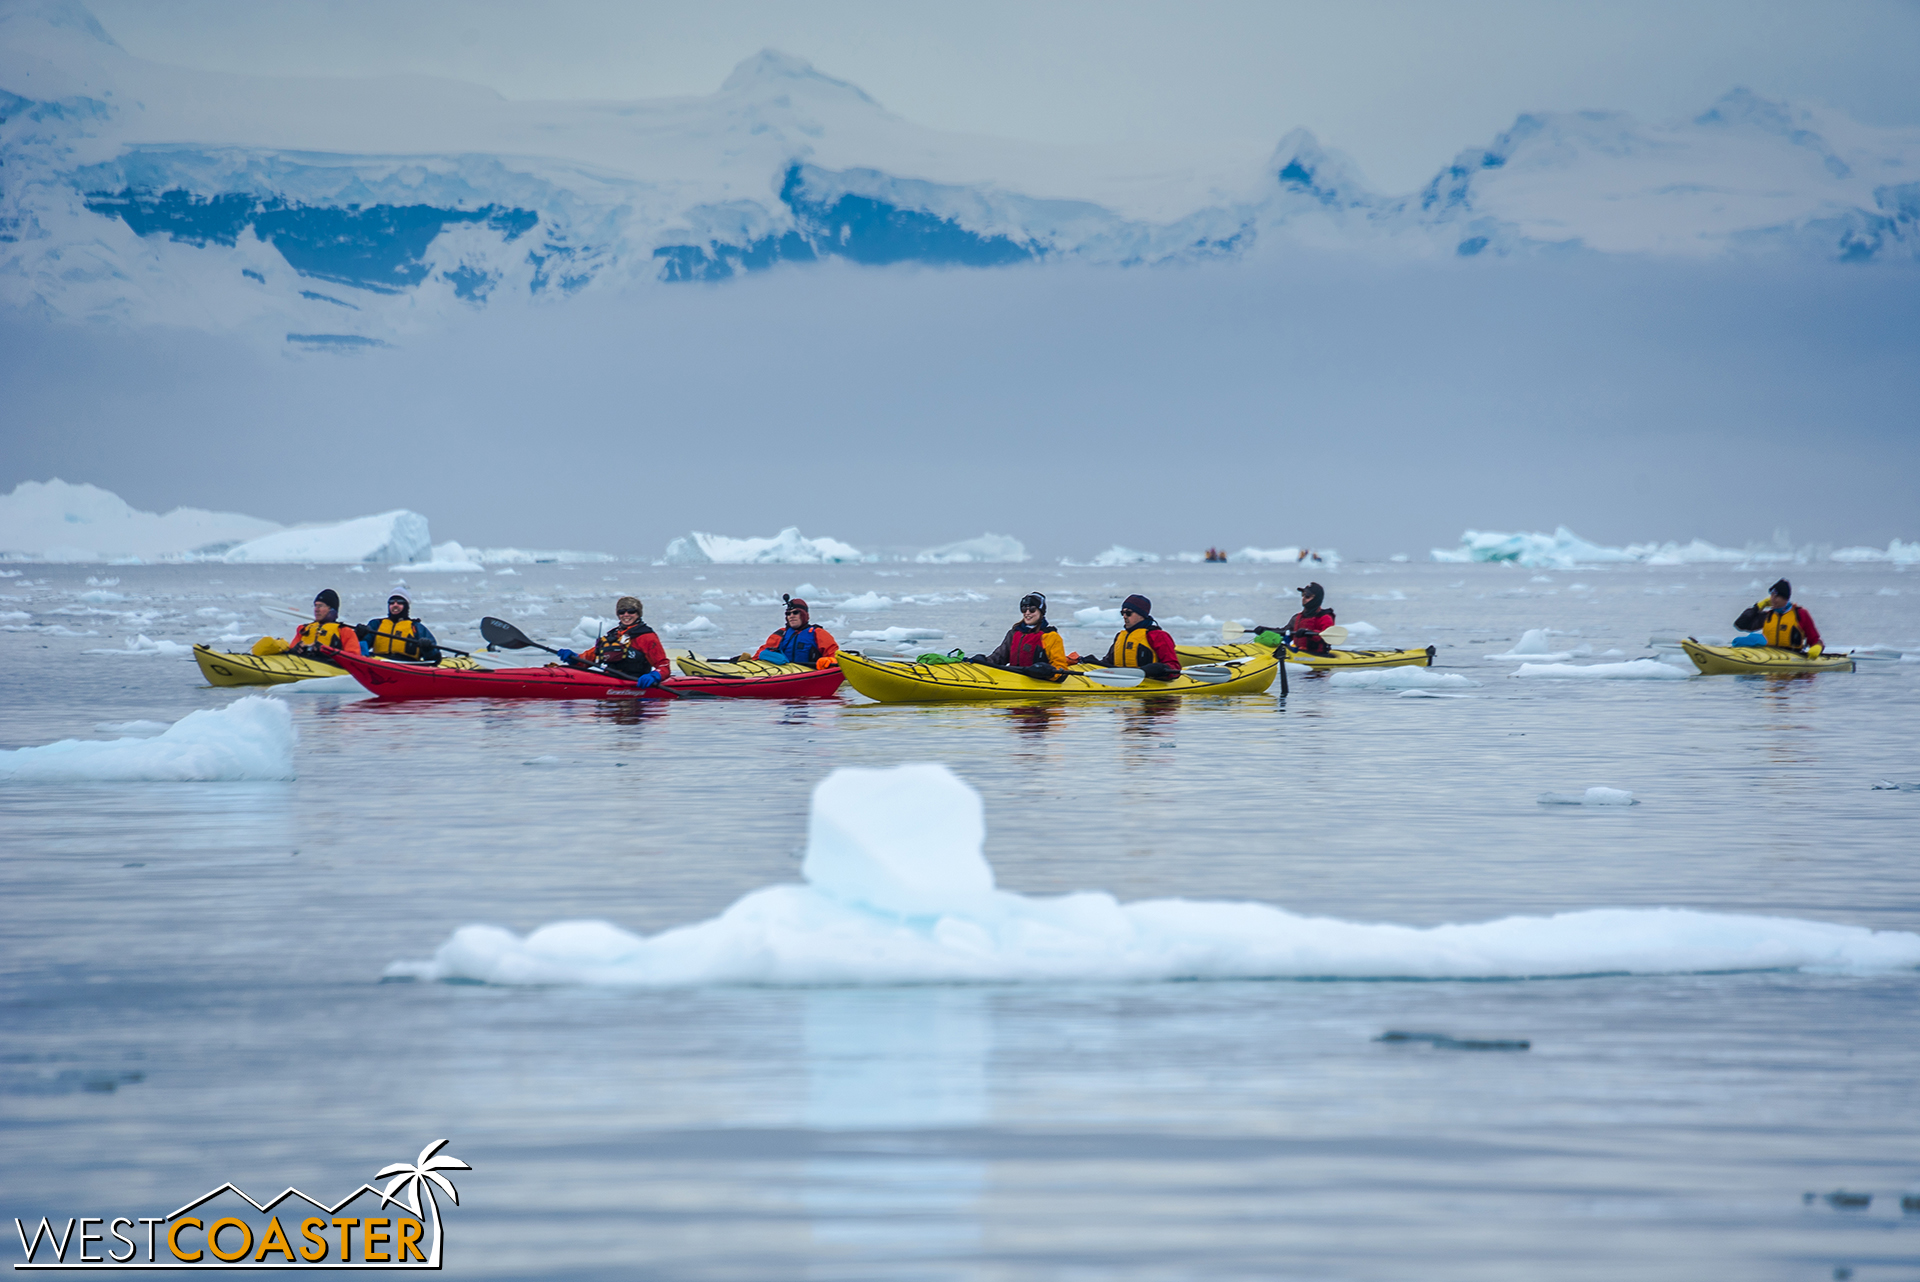 Kayakers approach in a group.